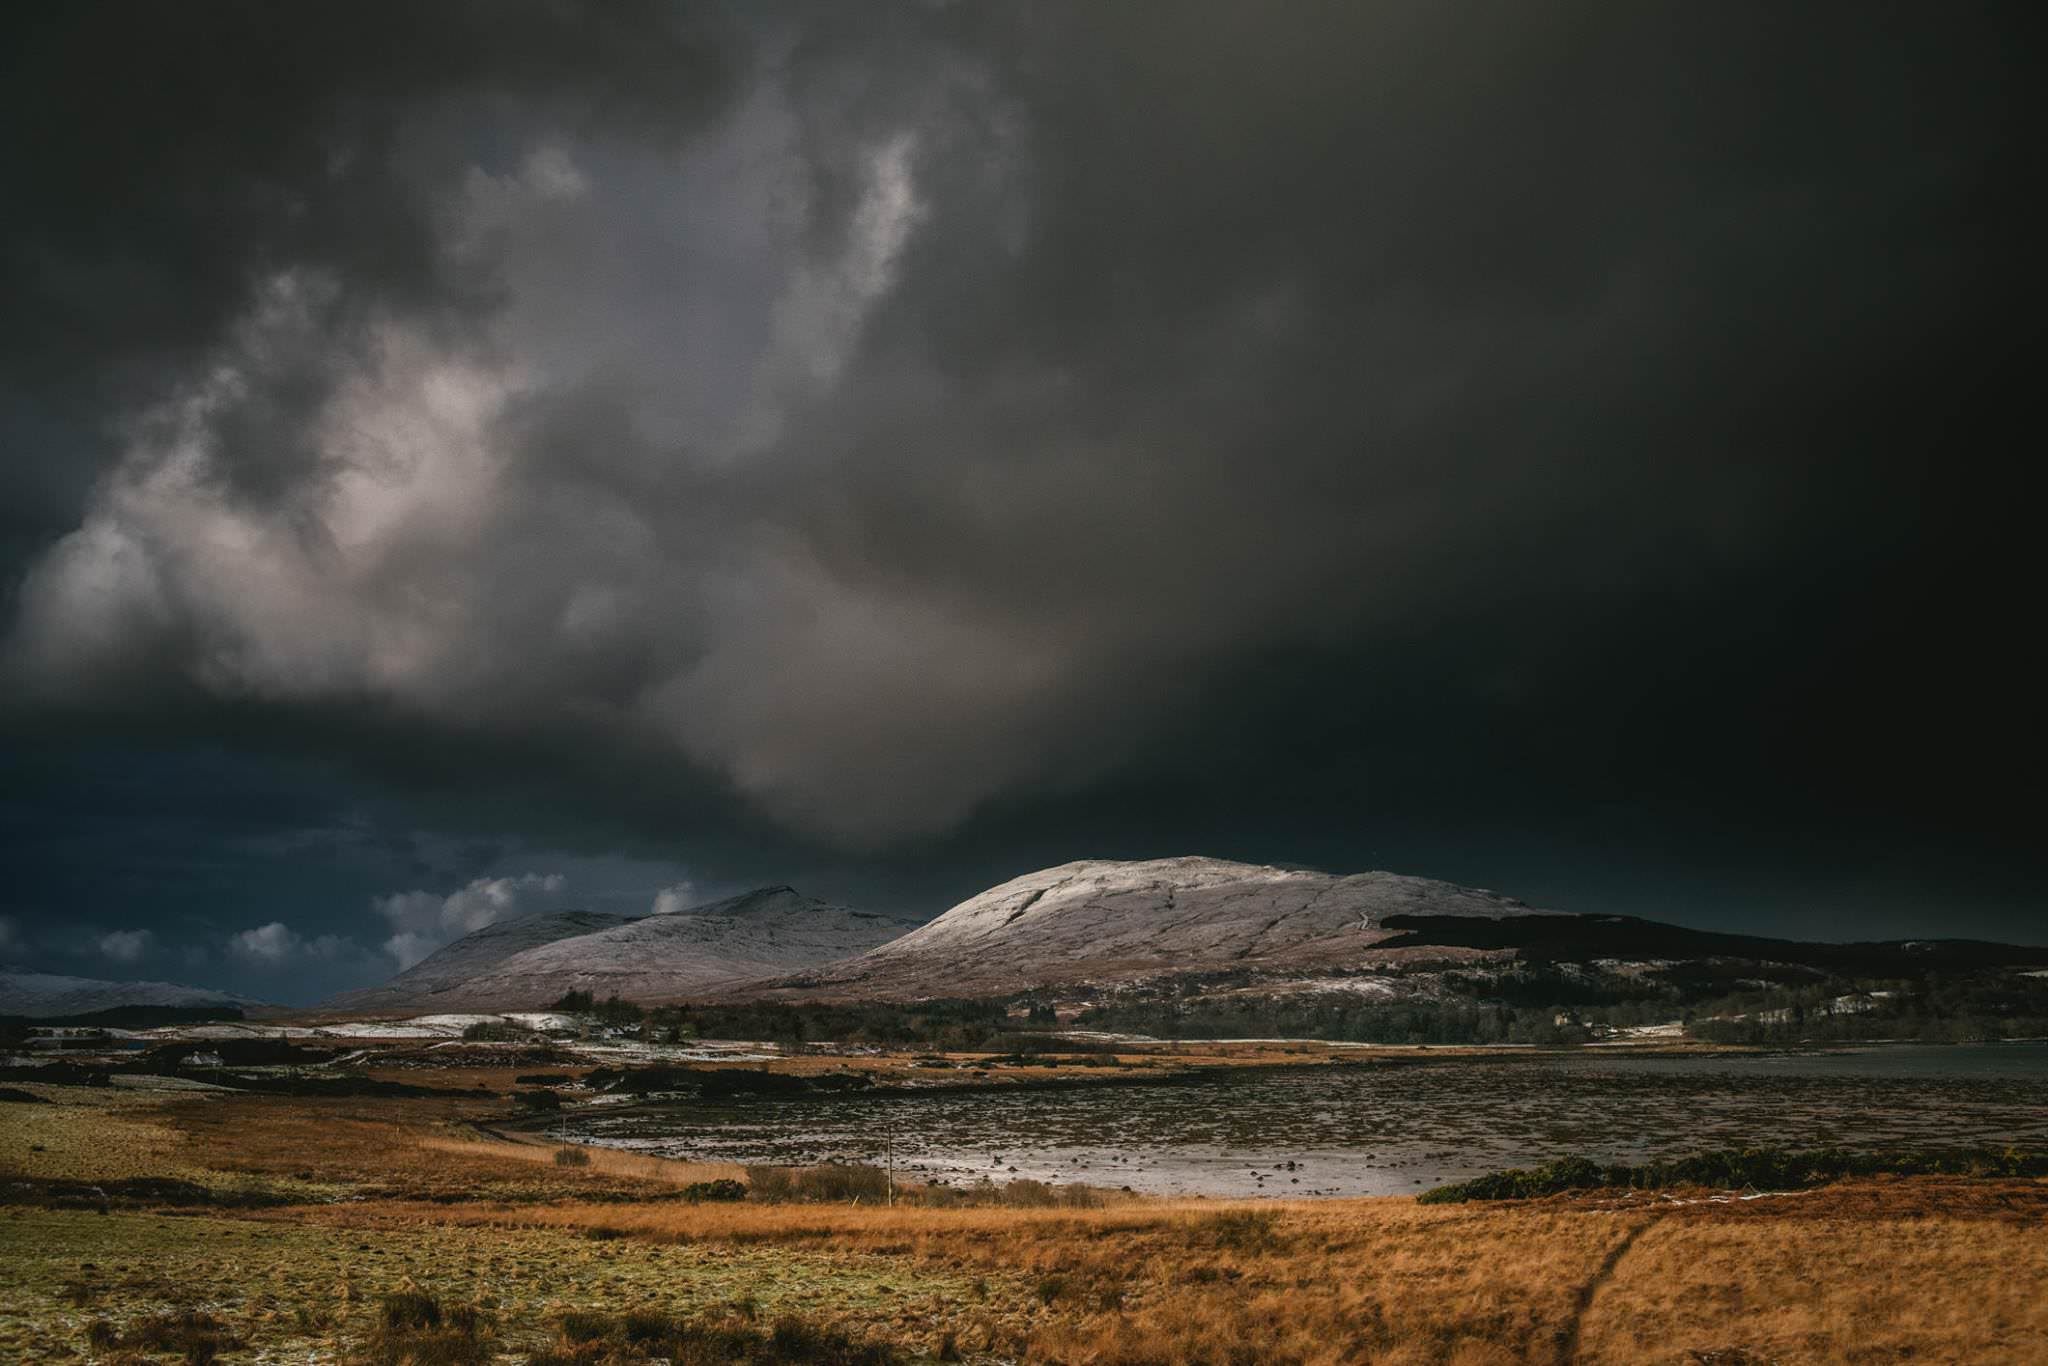 A snowy capped mountain in Ireland